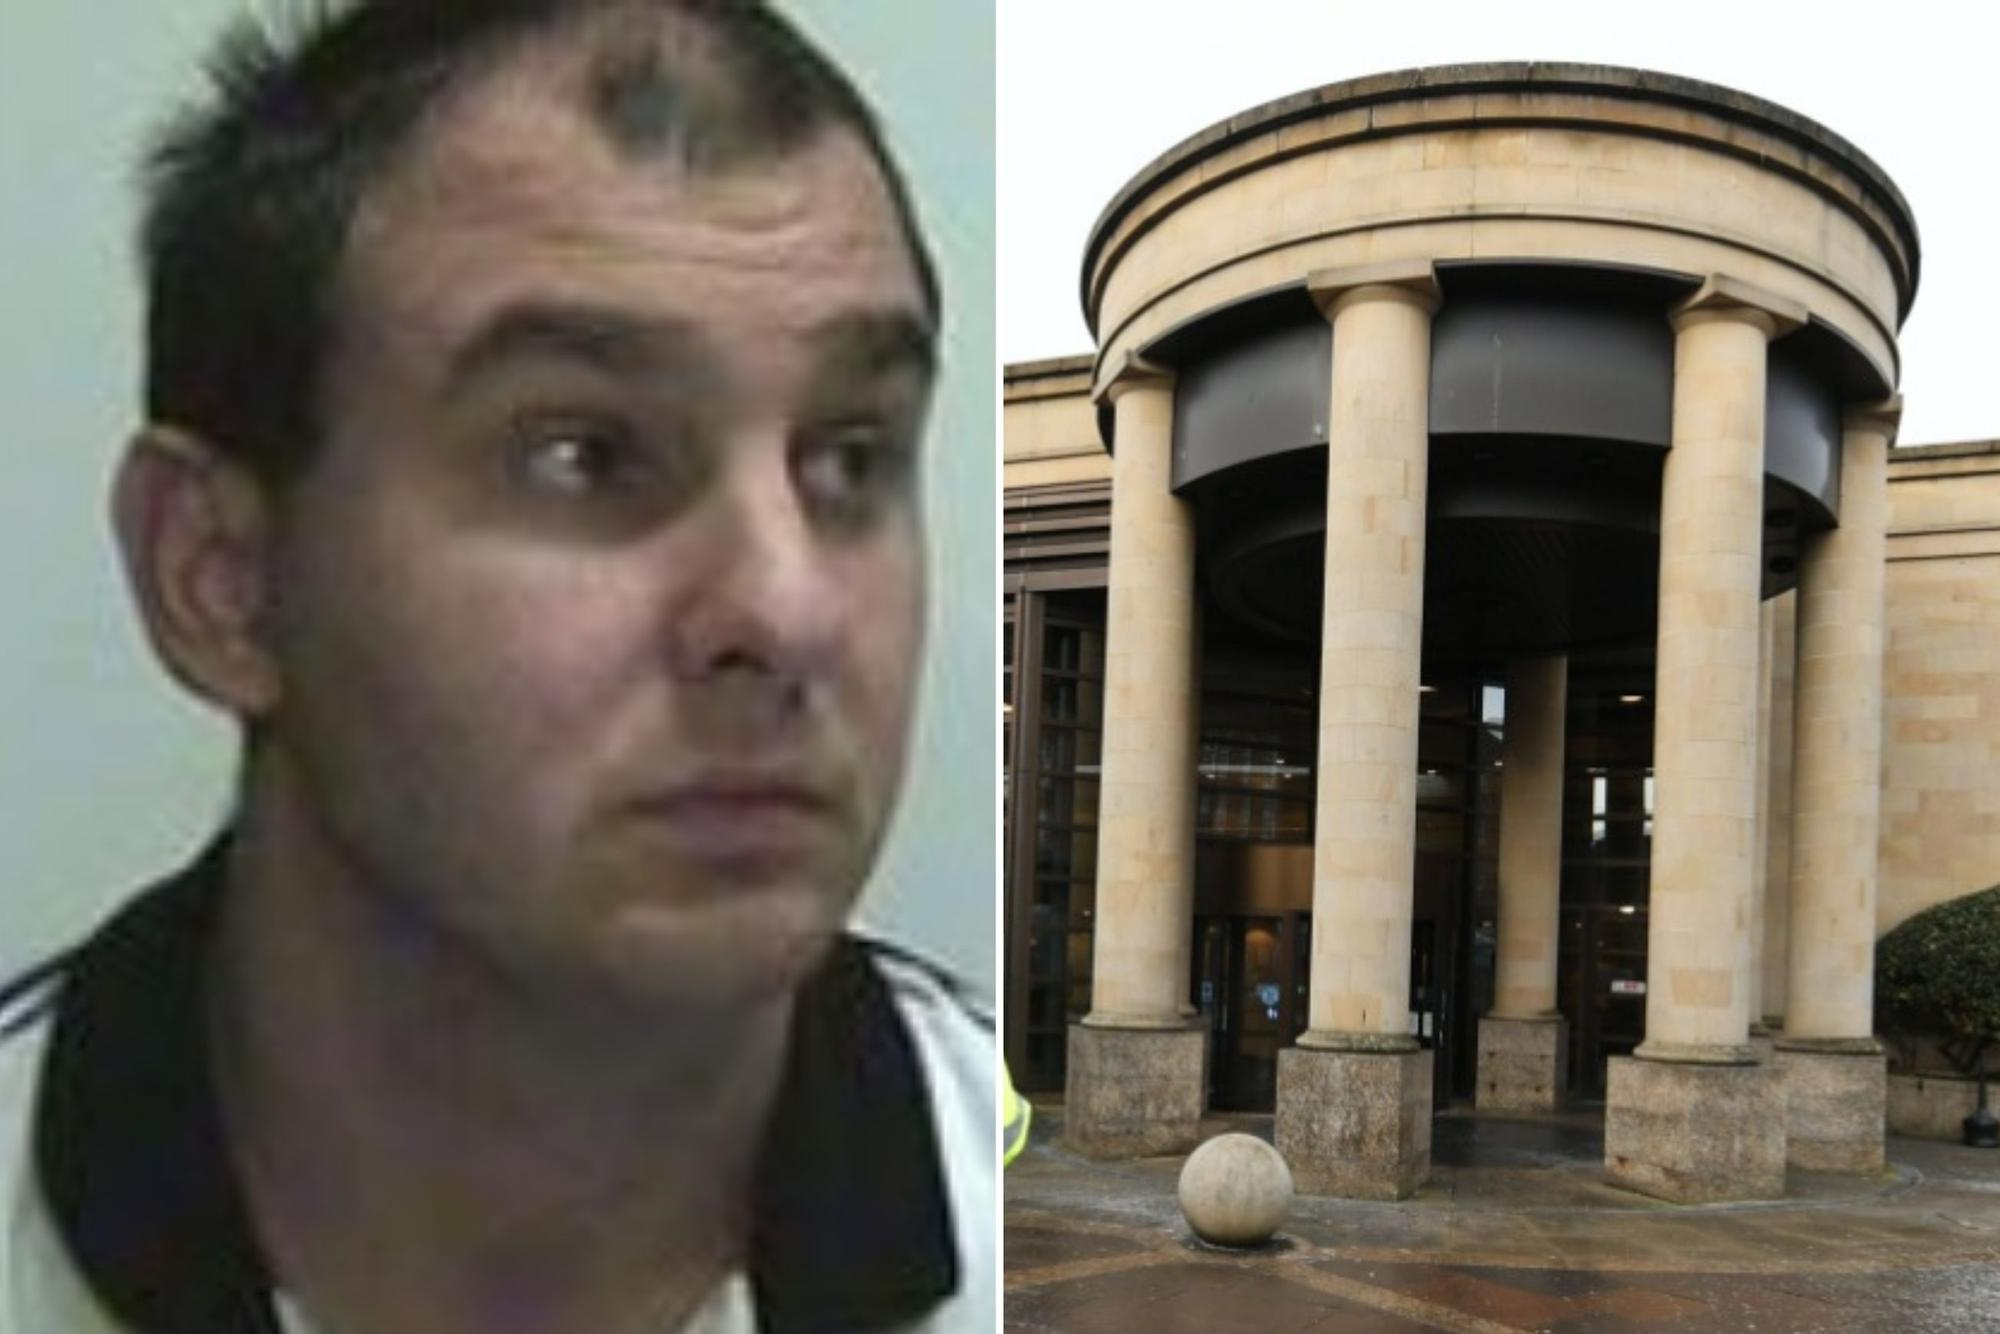 Pregnant woman was among the victims of 'despicable' Edinburgh serial rapist